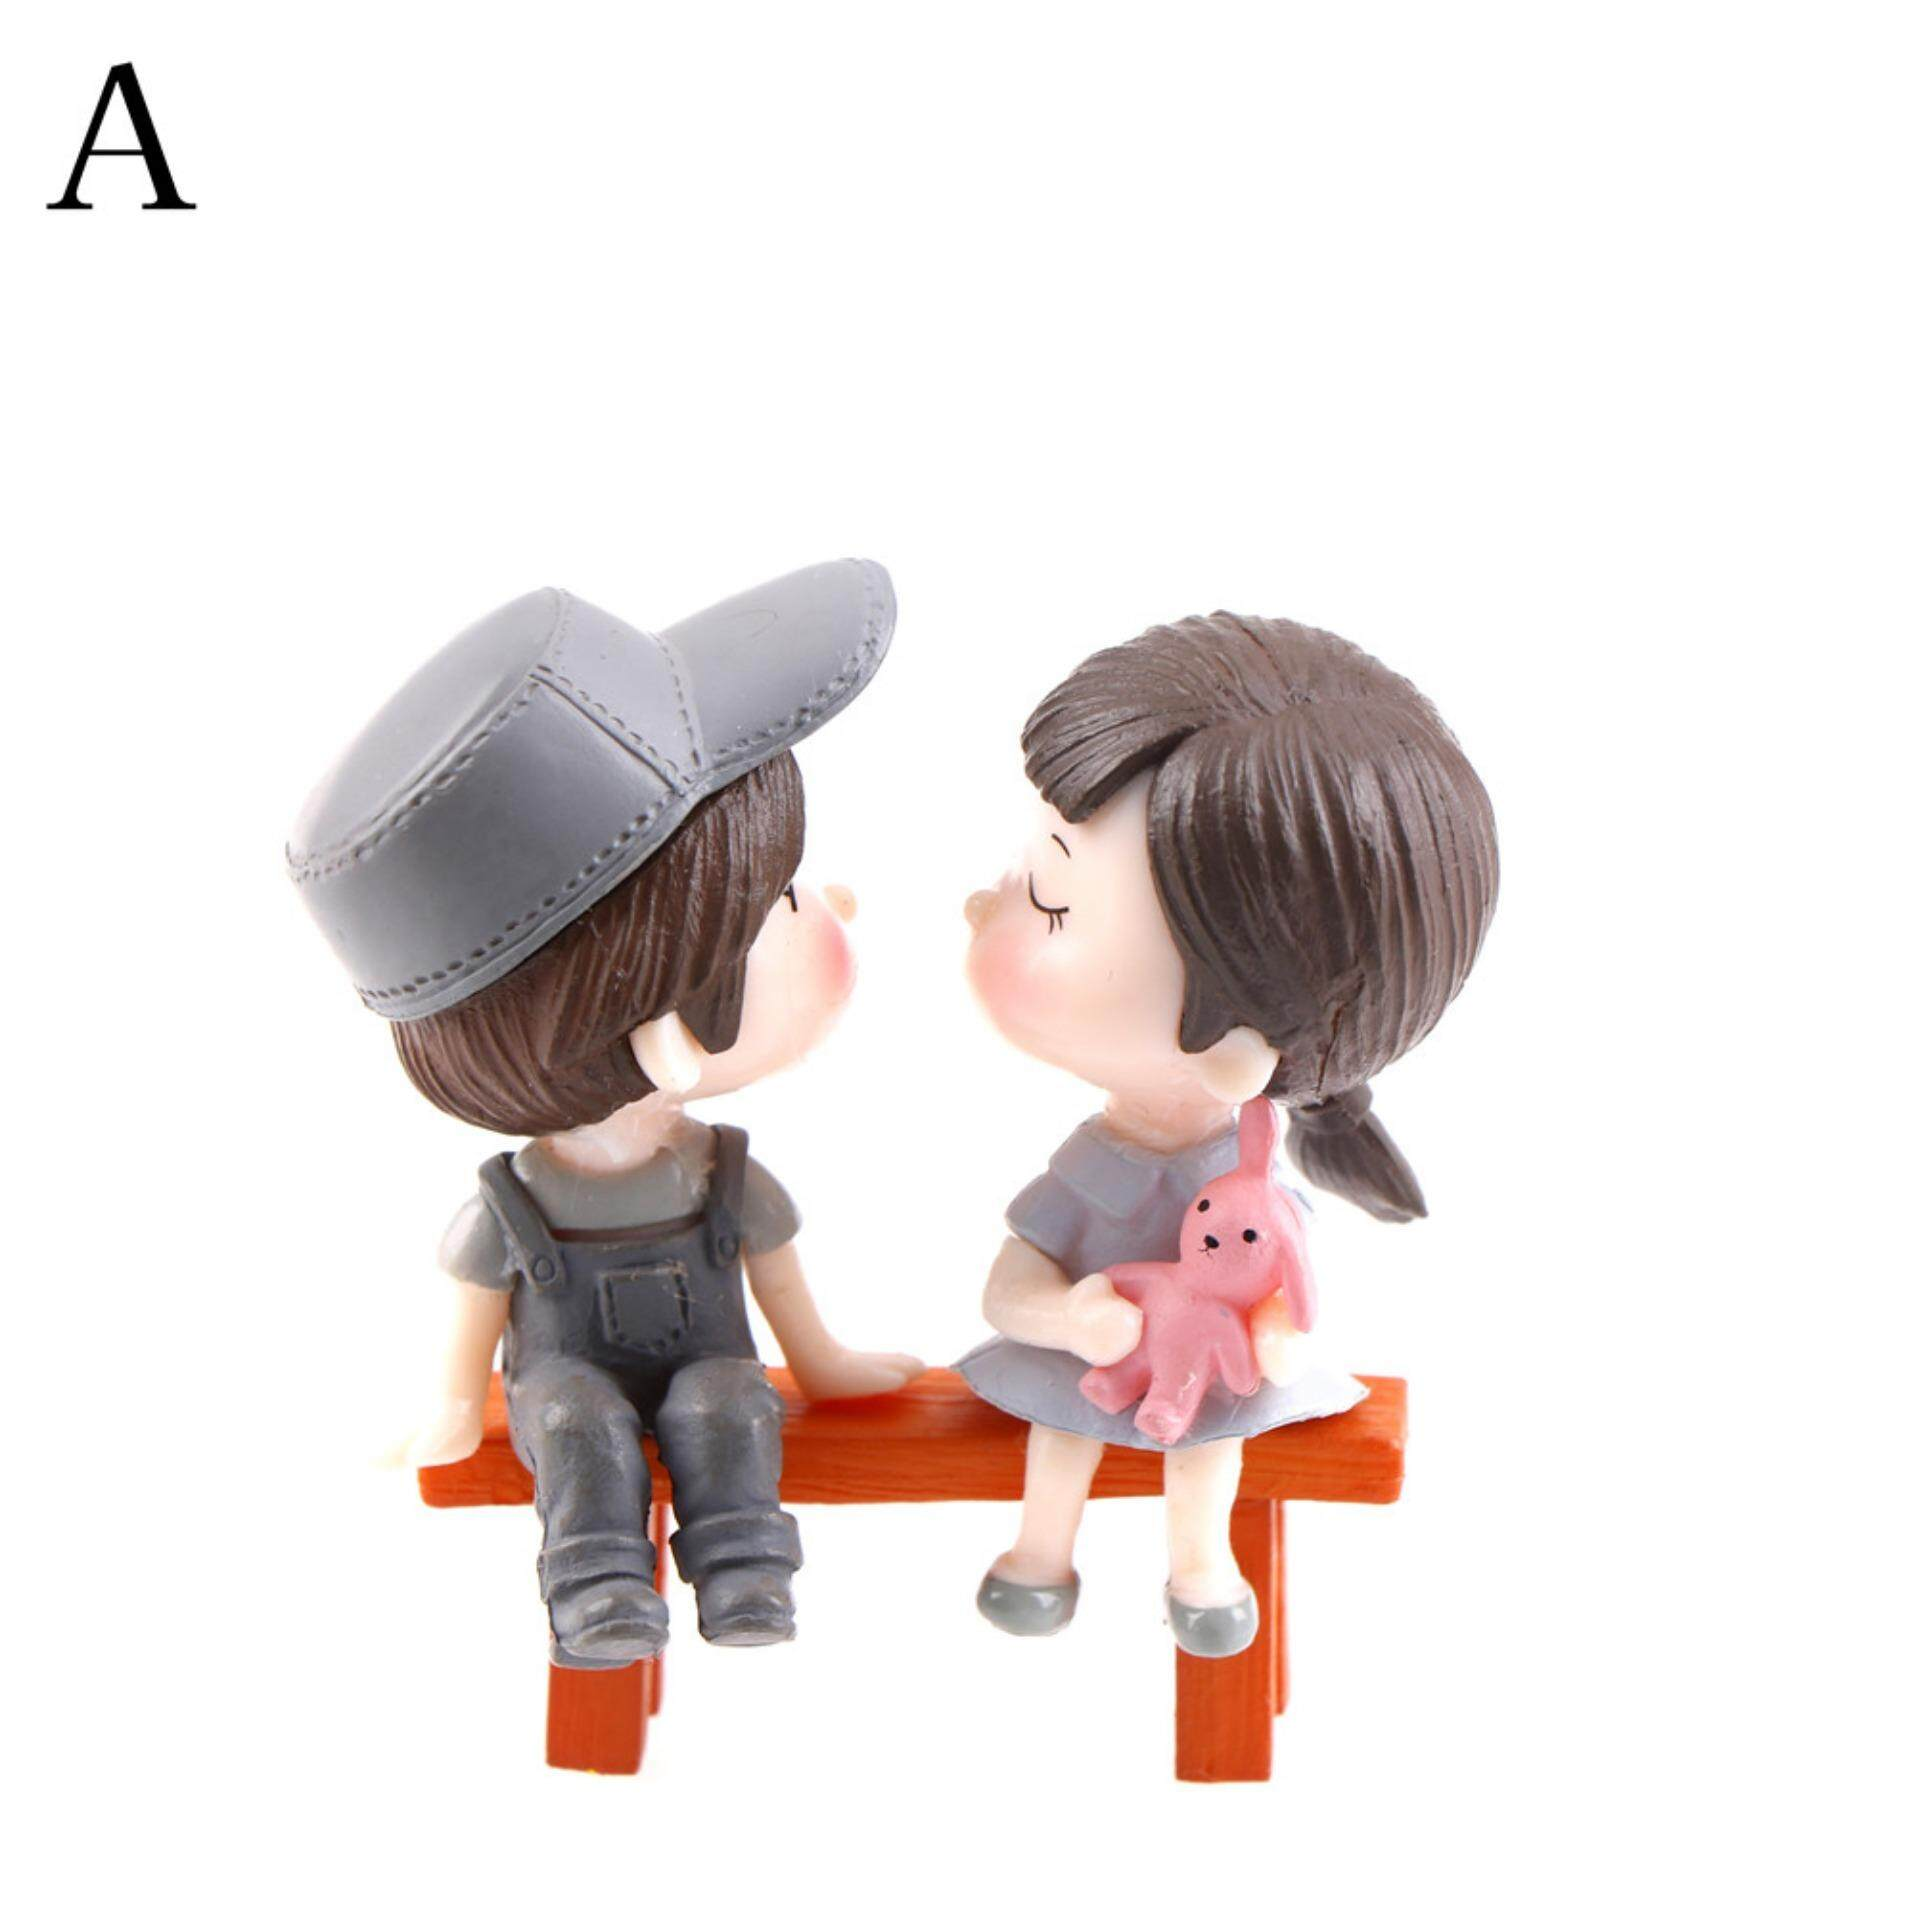 Jettingbuy Moss micro - landscape  festive ornaments stool couples small ornaments  Type:A